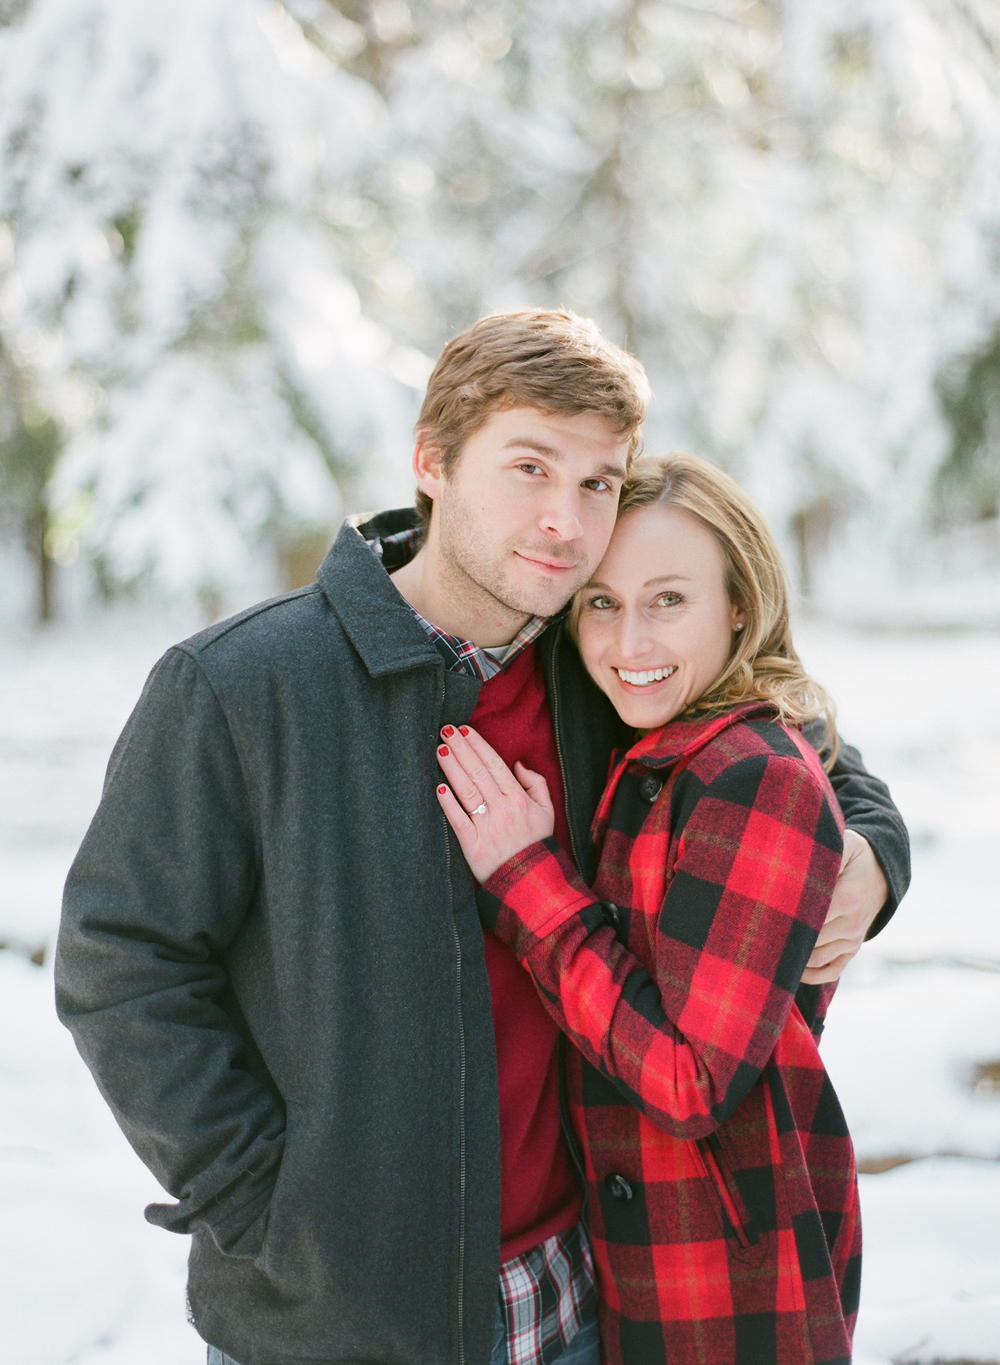 winter-engagement-photos-wausau-012.jpg